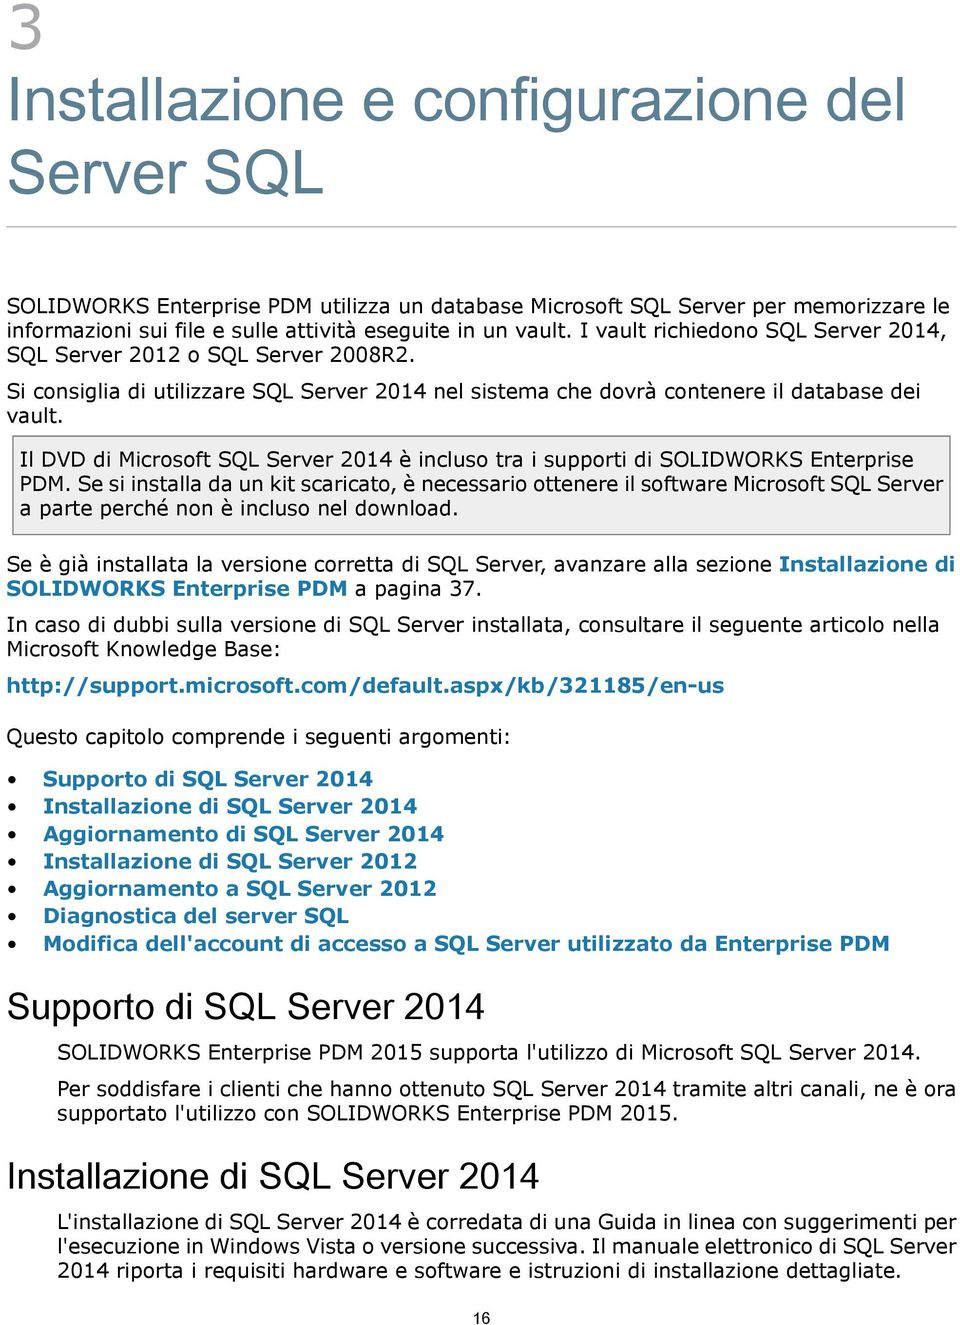 Il DVD di Microsoft SQL Server 2014 è incluso tra i supporti di SOLIDWORKS Enterprise PDM.